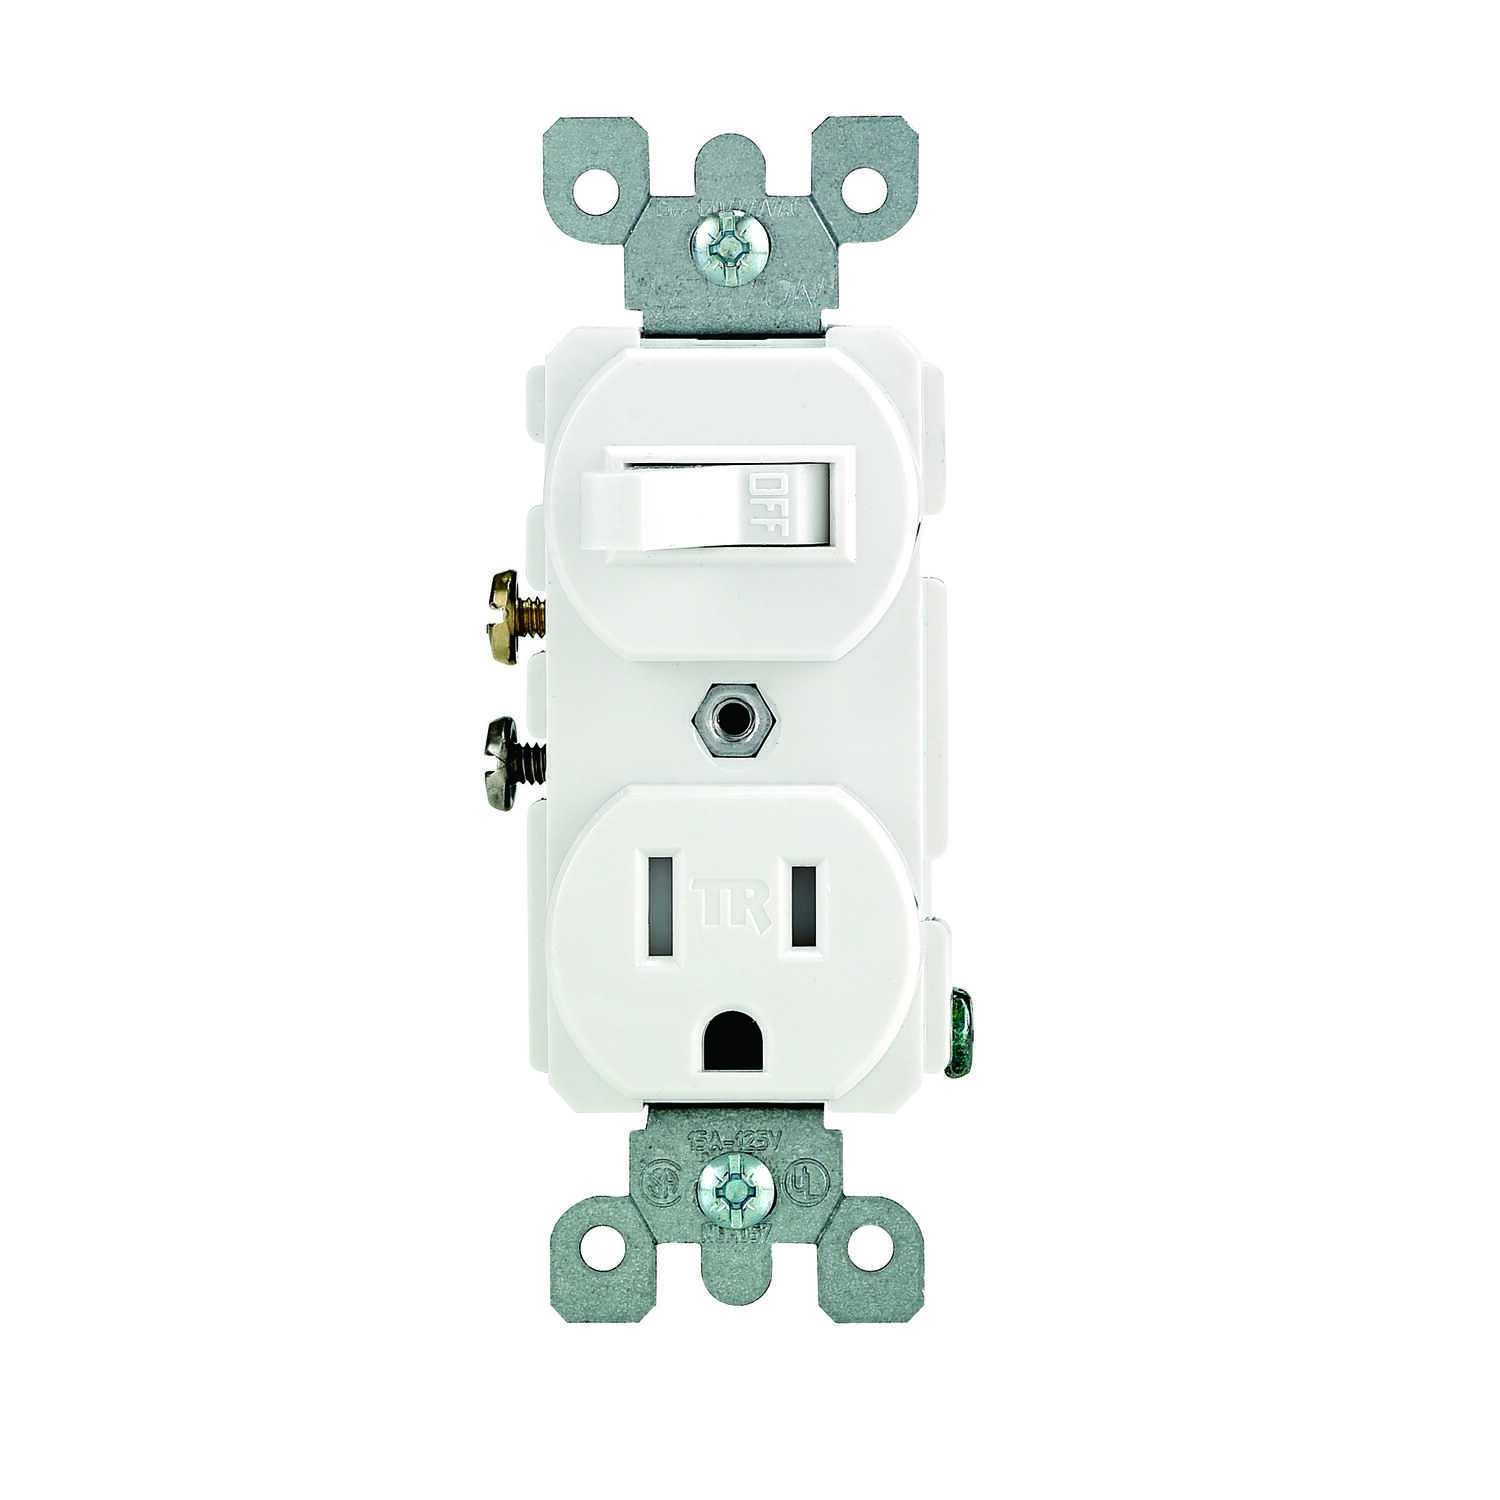 Leviton  15 amps 125 volt White  Combination Switch/Outlet  5-15R